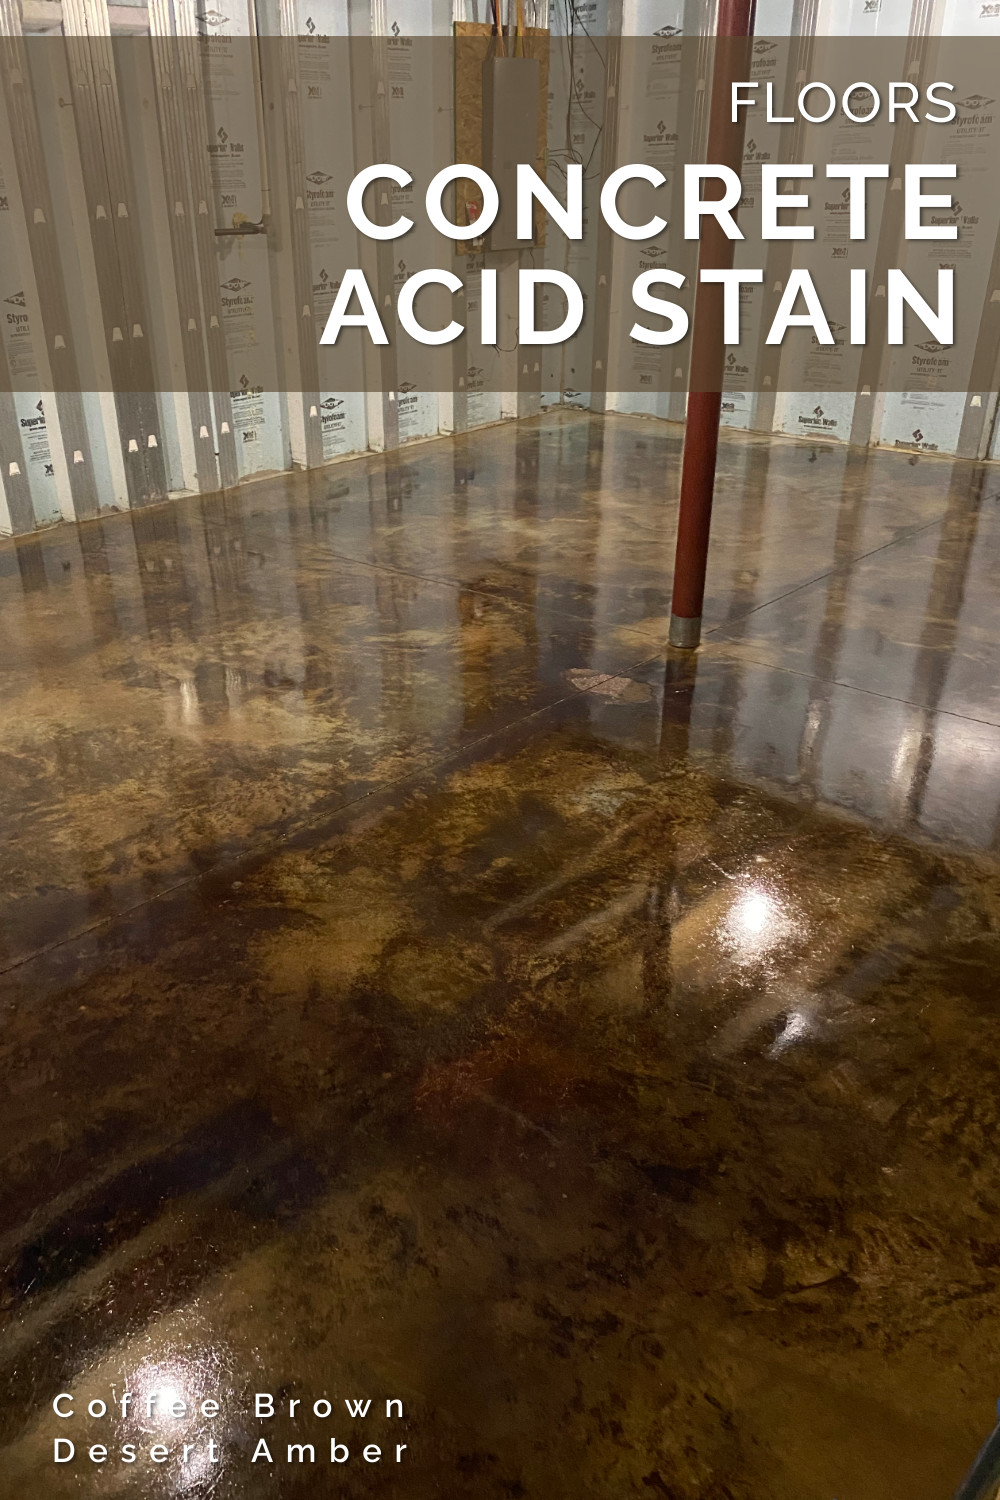 Concrete Acid Stained Floor - Coffee Brown & Desert Amber